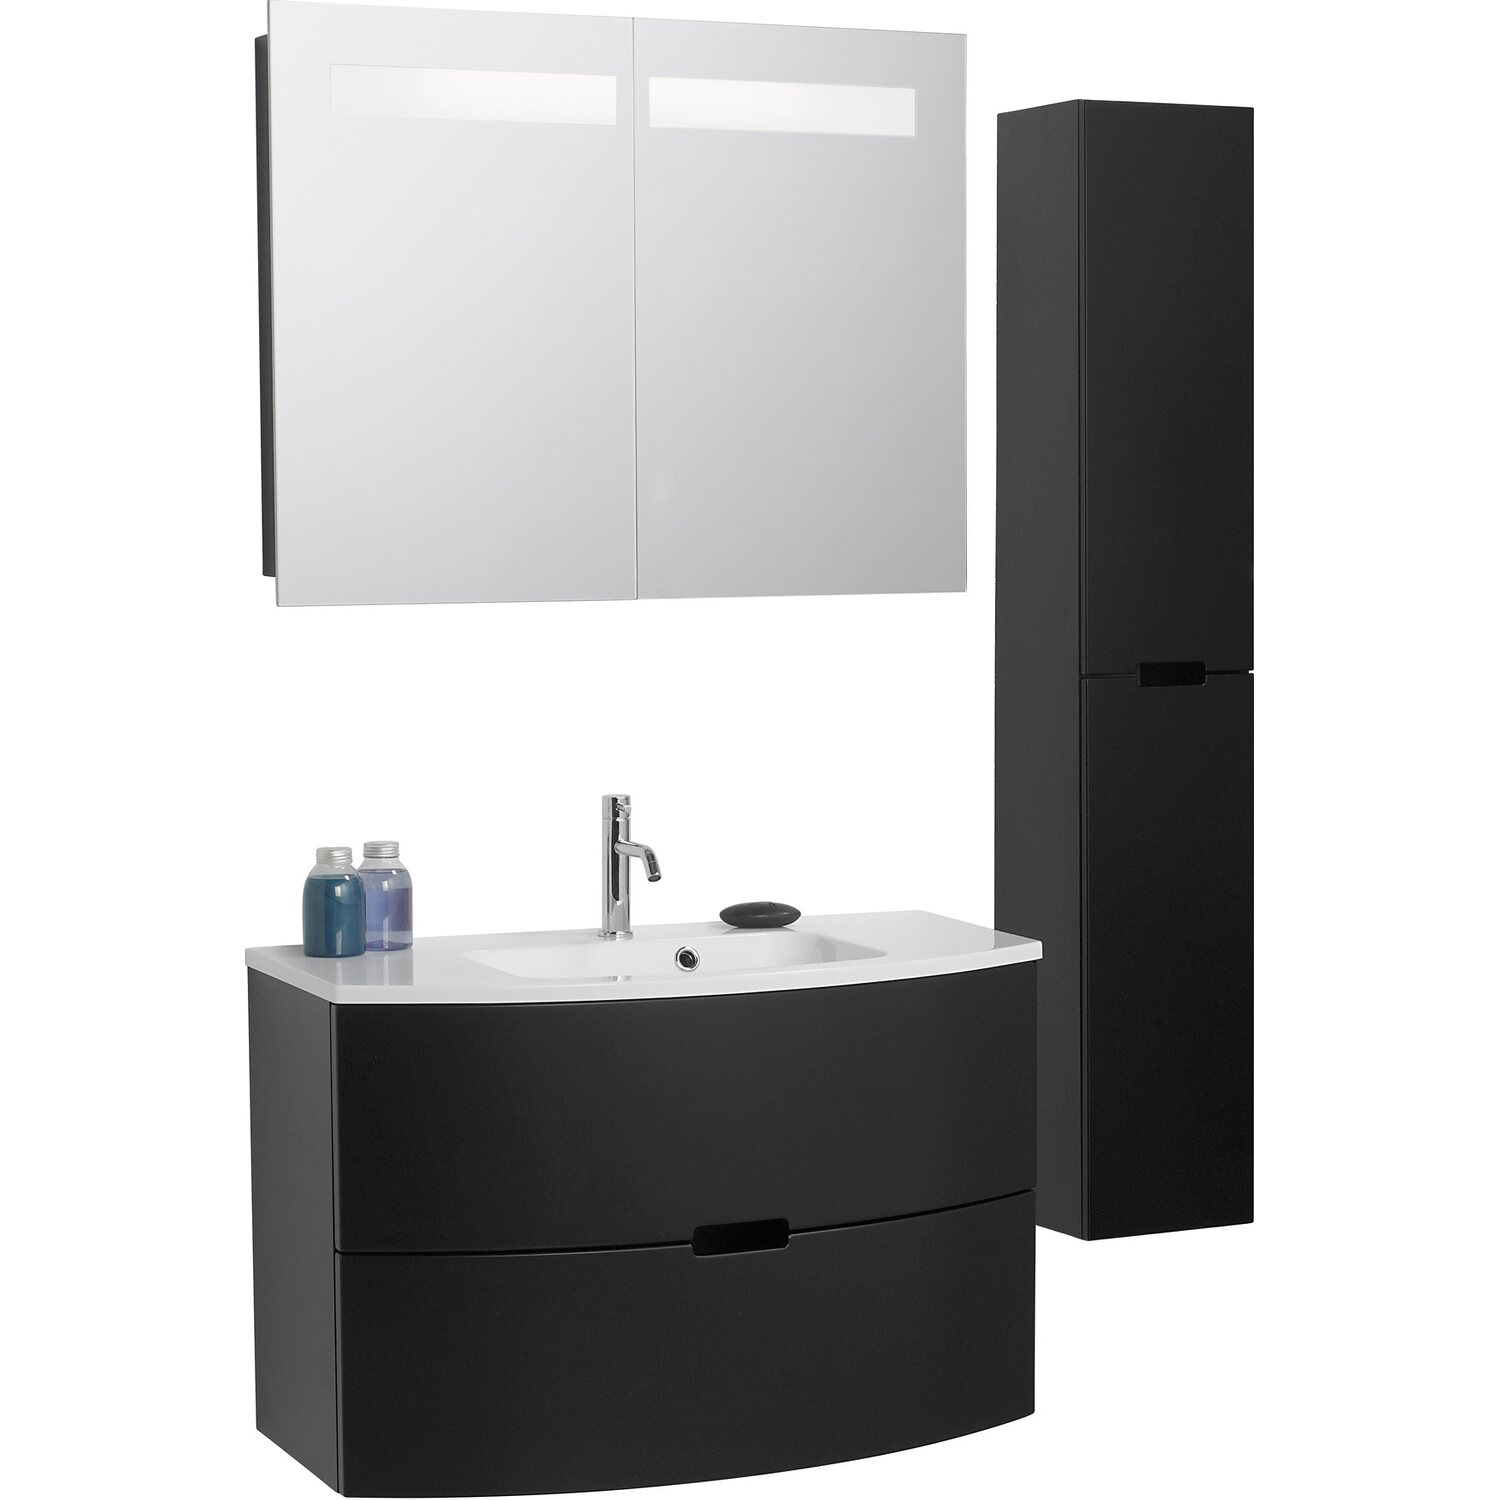 scanbad badm bel set 120 cm mit spiegelschrank 2 t rig. Black Bedroom Furniture Sets. Home Design Ideas